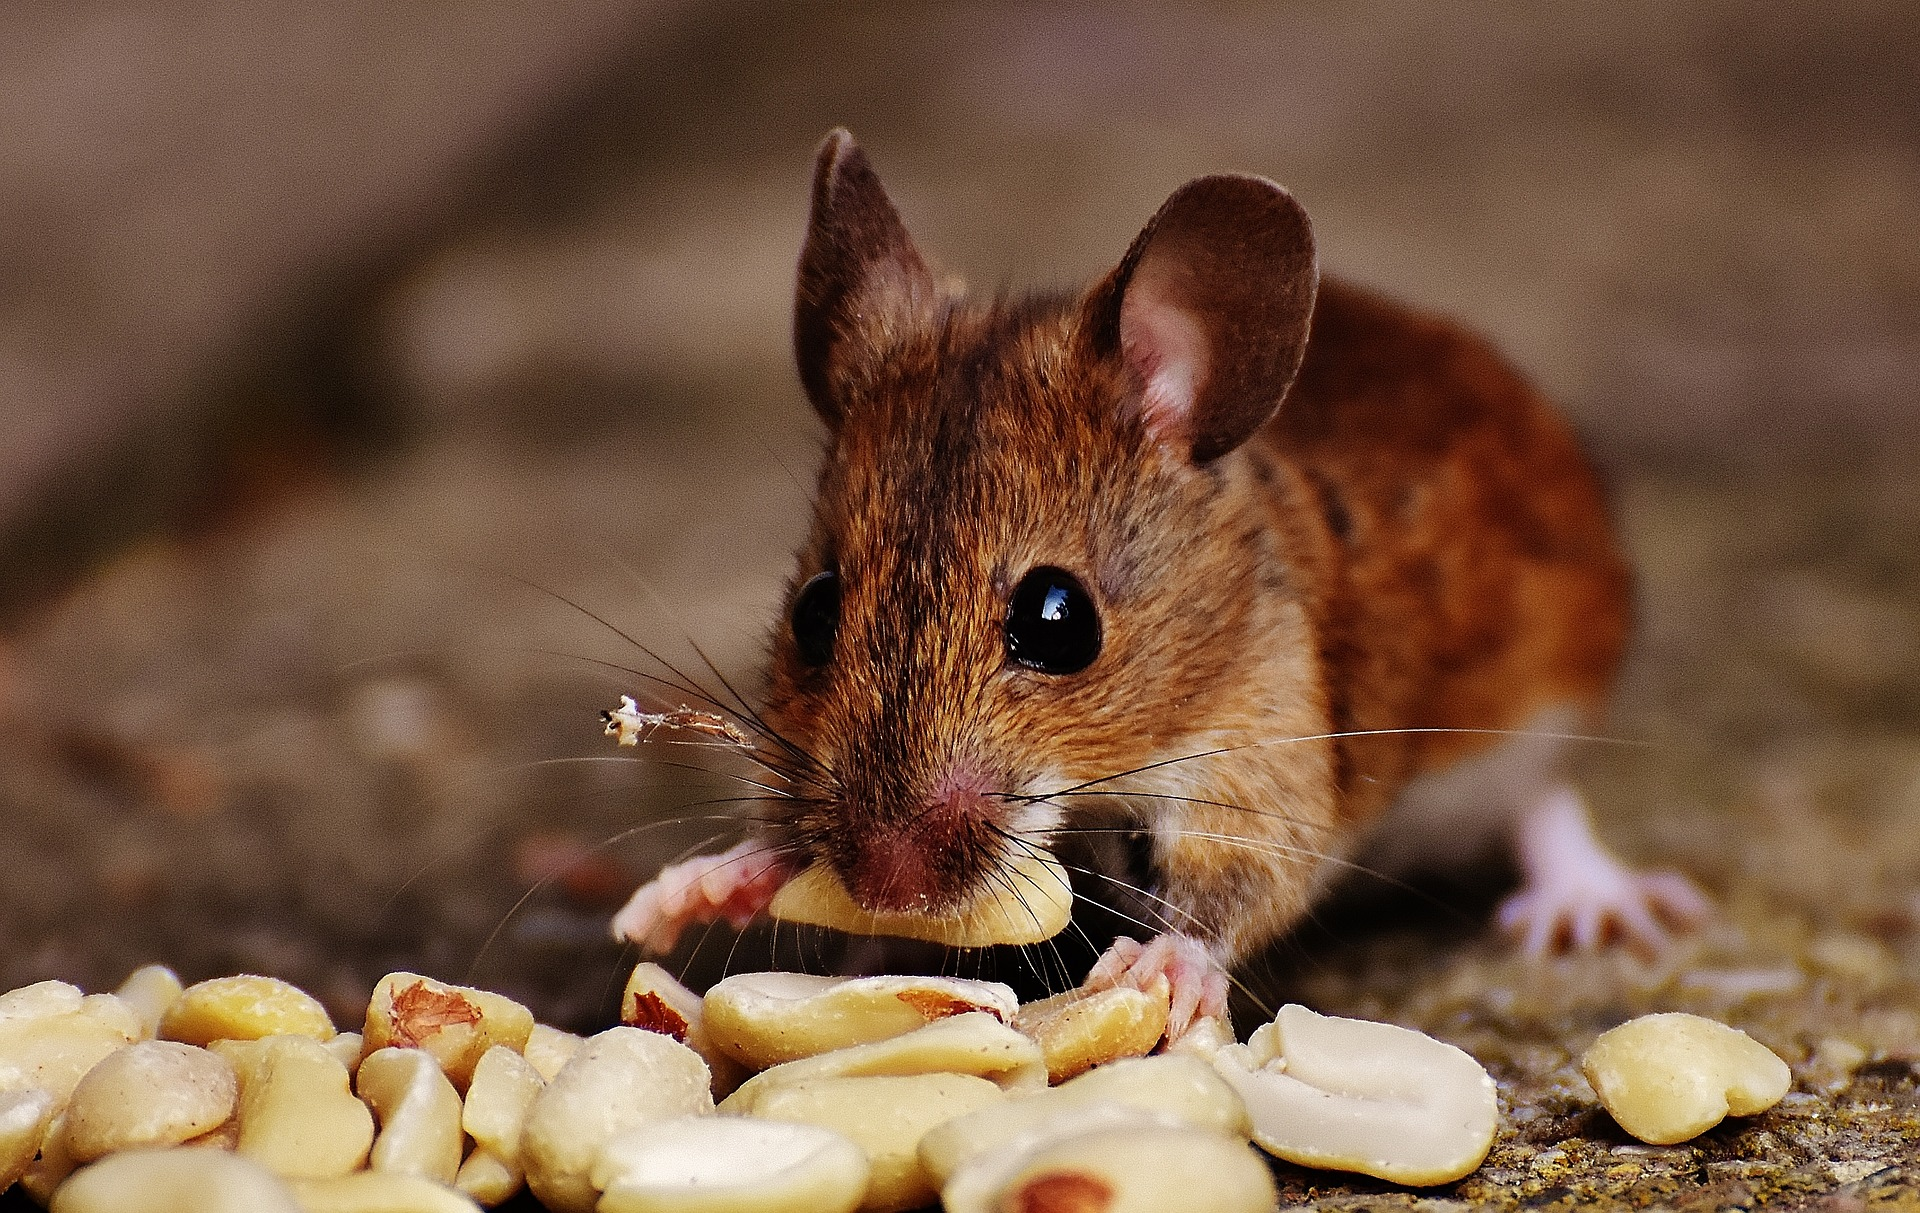 Image of mouse eating in attic